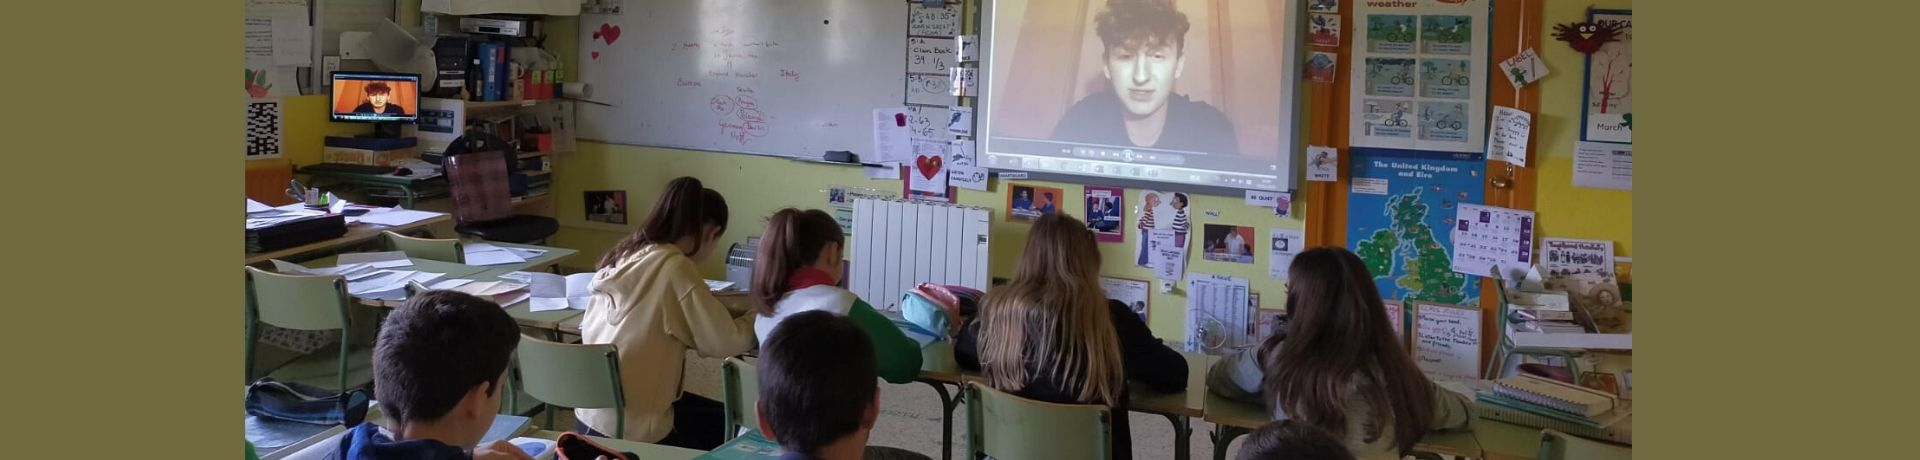 The classroom watching the video of Michael from Ireland